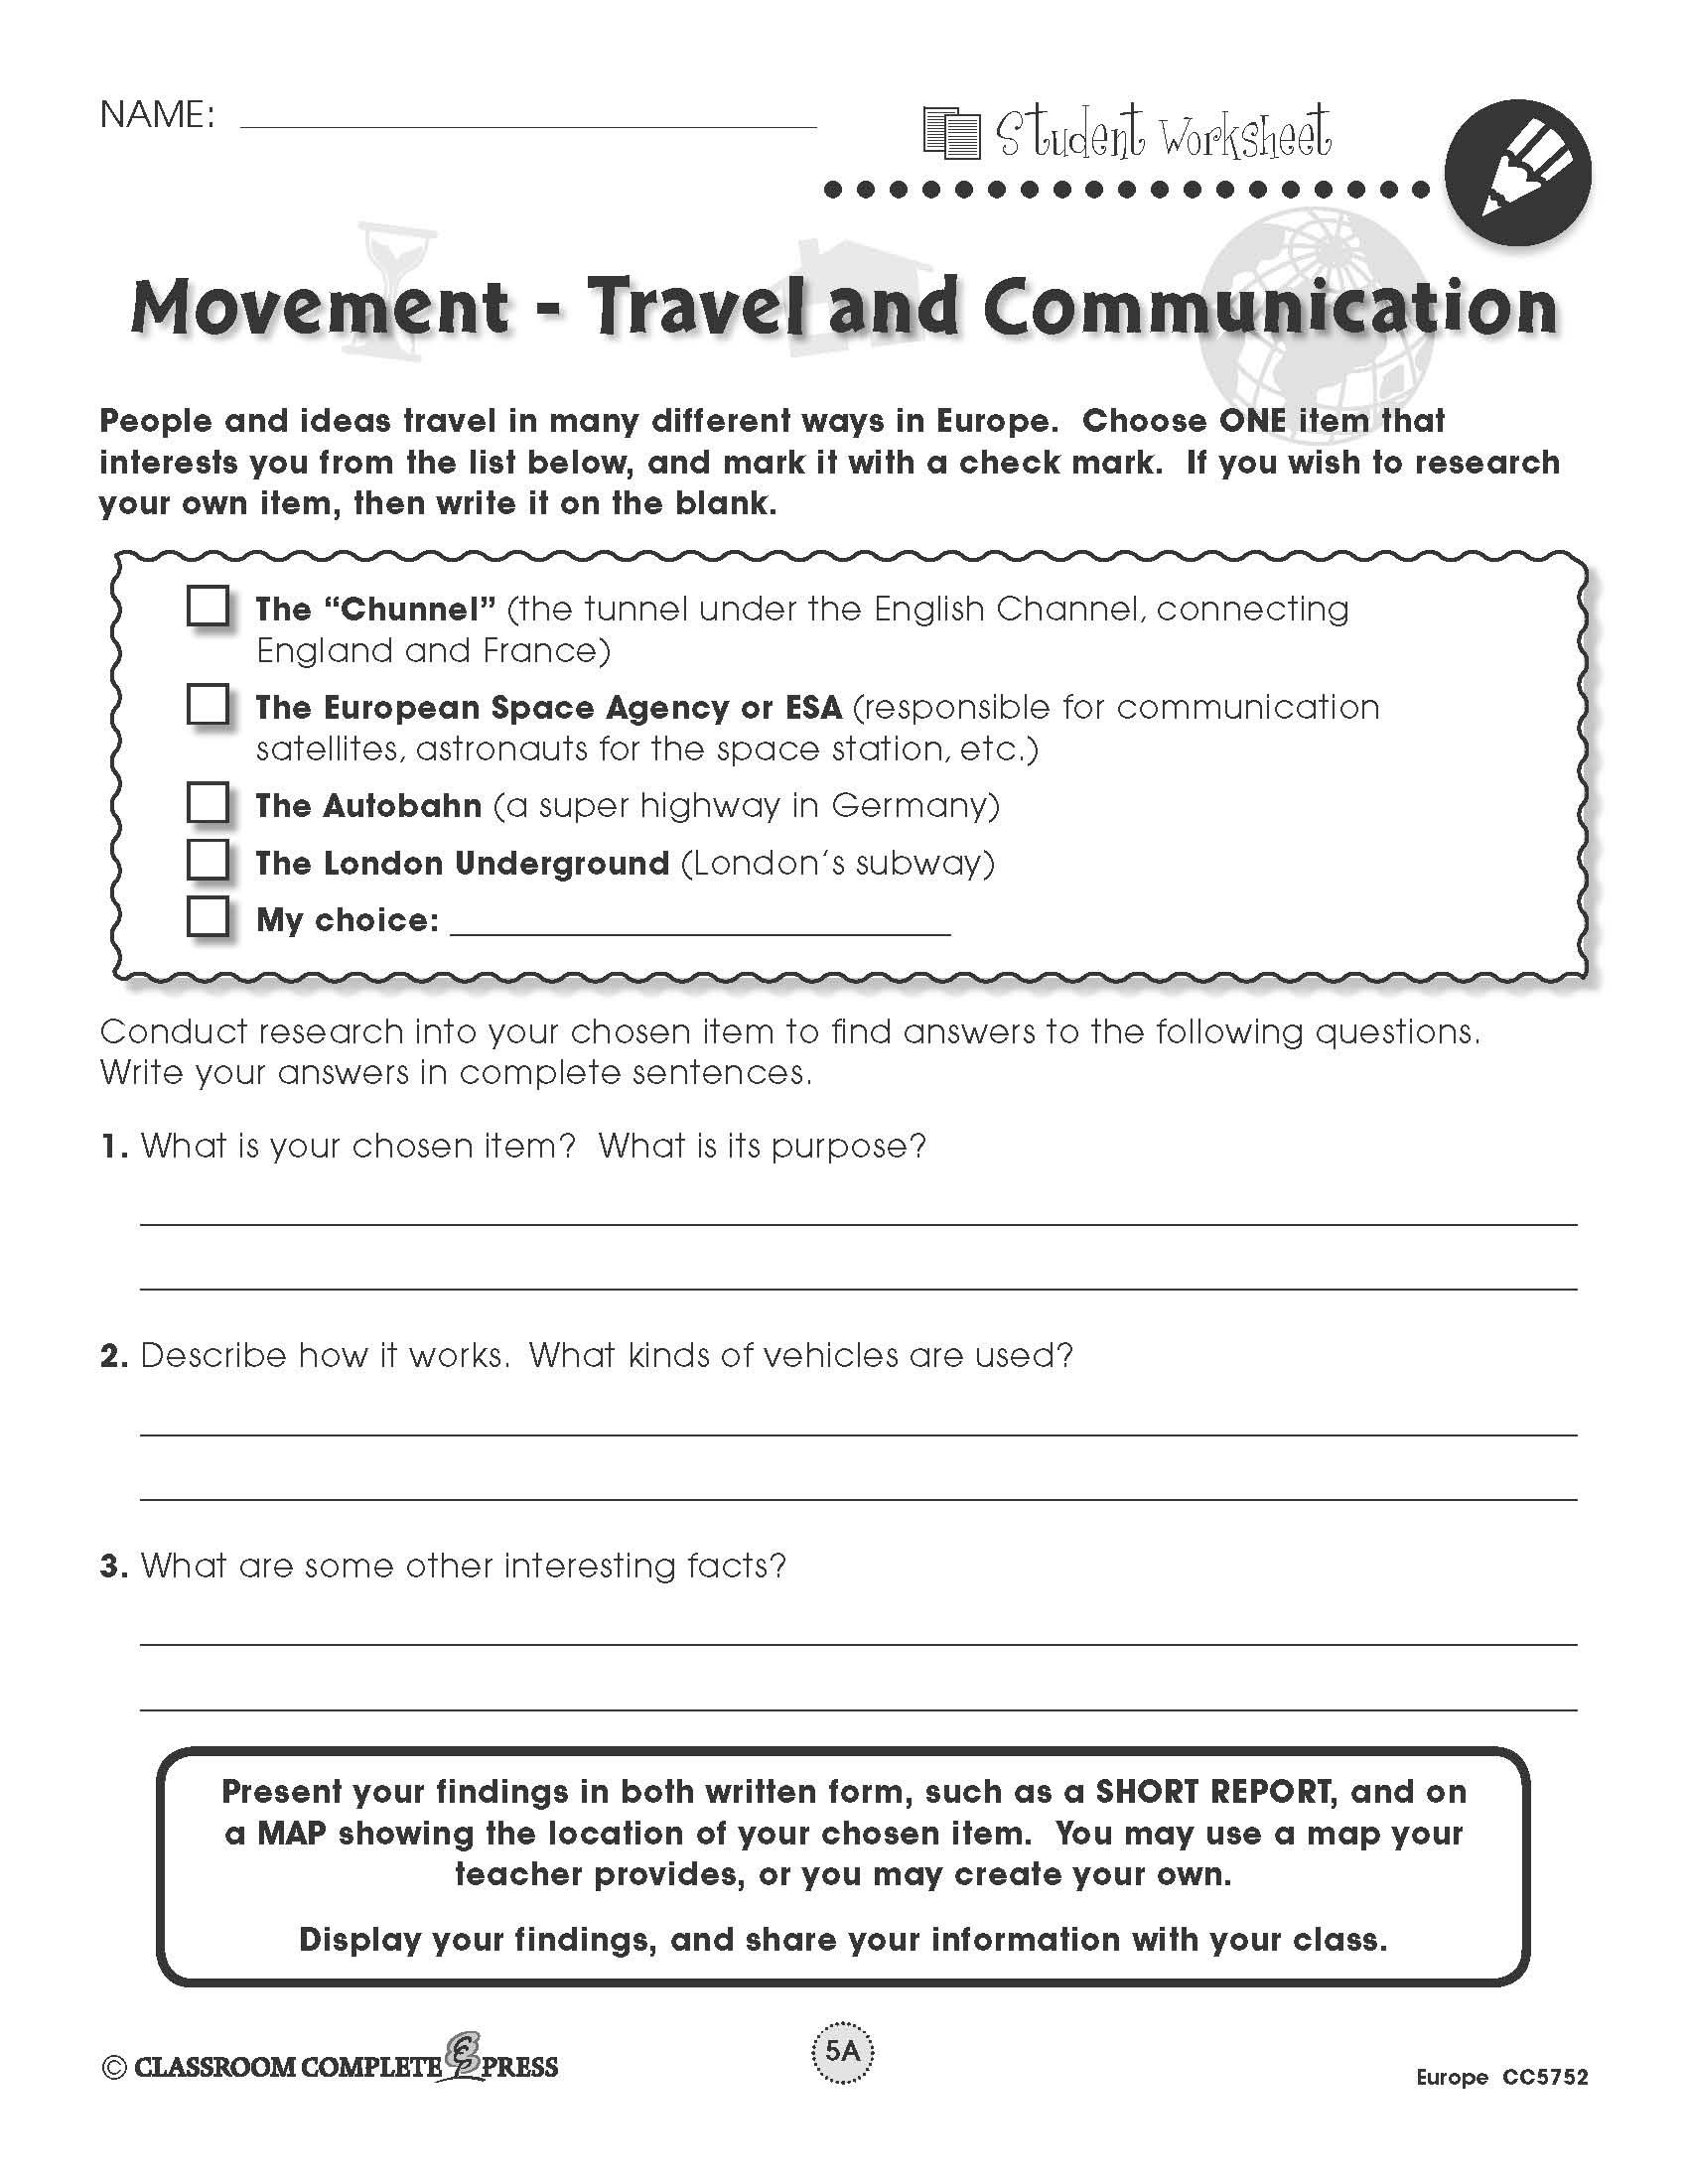 Research travel and communication in europe with this free activity research travel and communication in europe with this free activity from ccp interactive a division gumiabroncs Choice Image